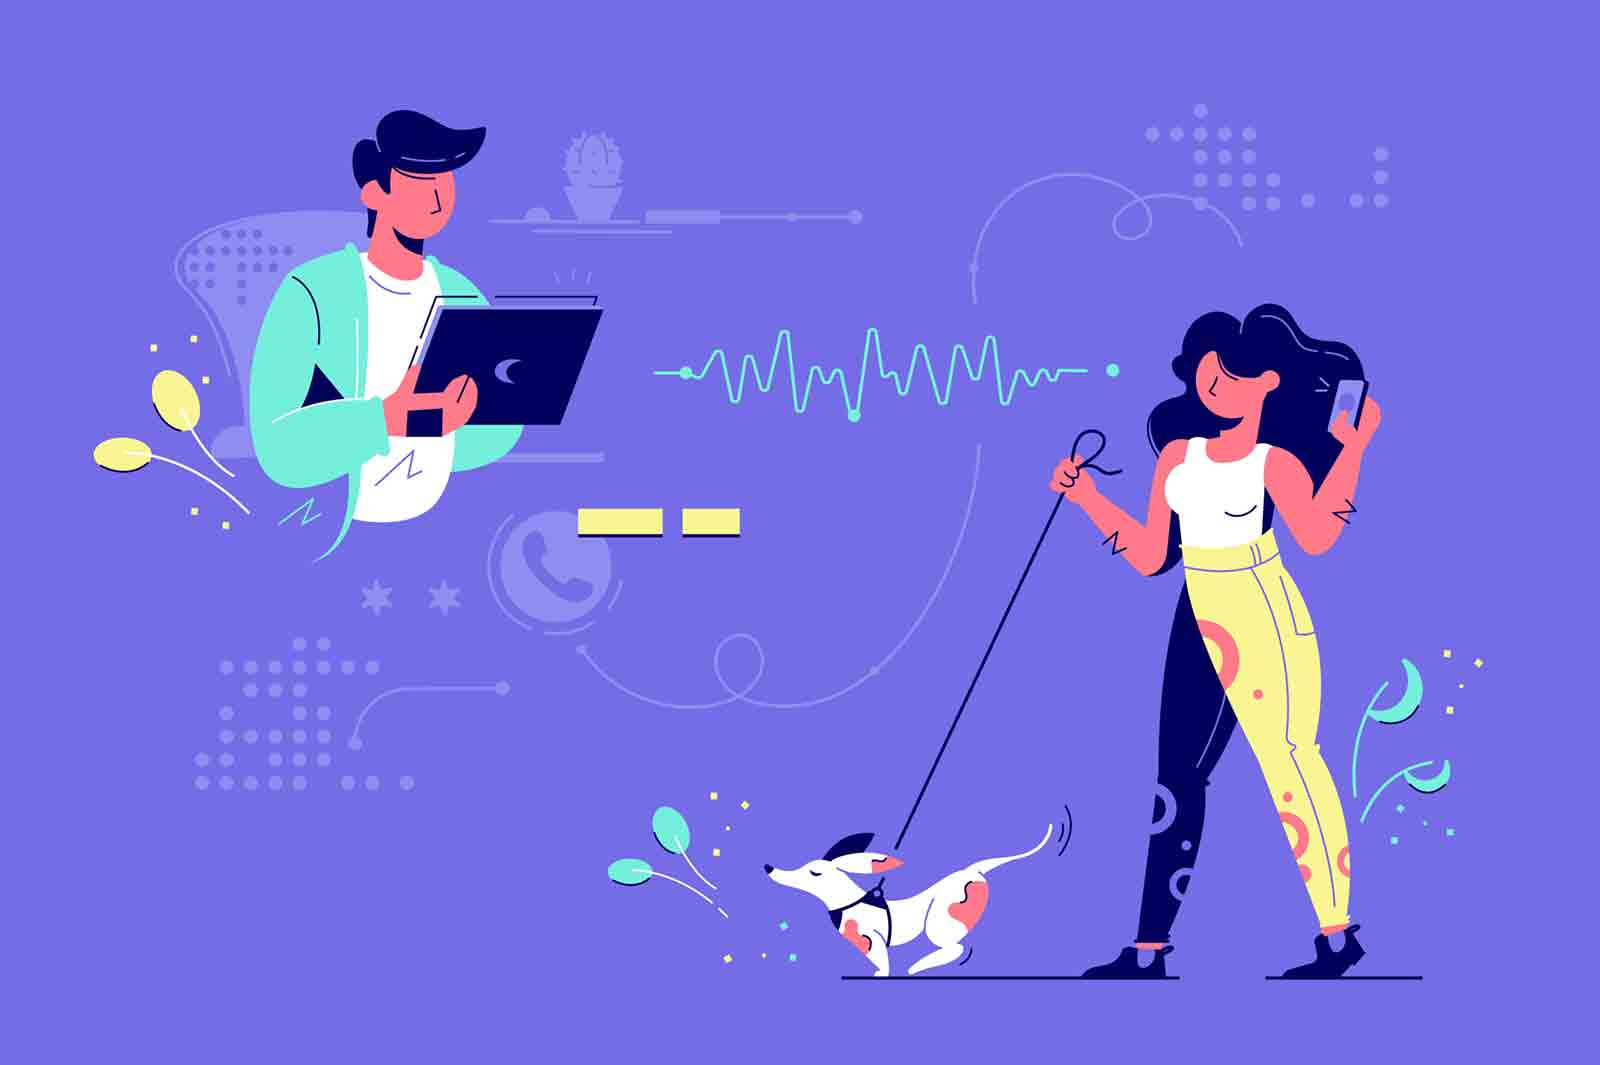 Communication with friends via modern gadget vector illustration. Woman walking dog and talking on phone. Man using tablet for chatting flat style concept